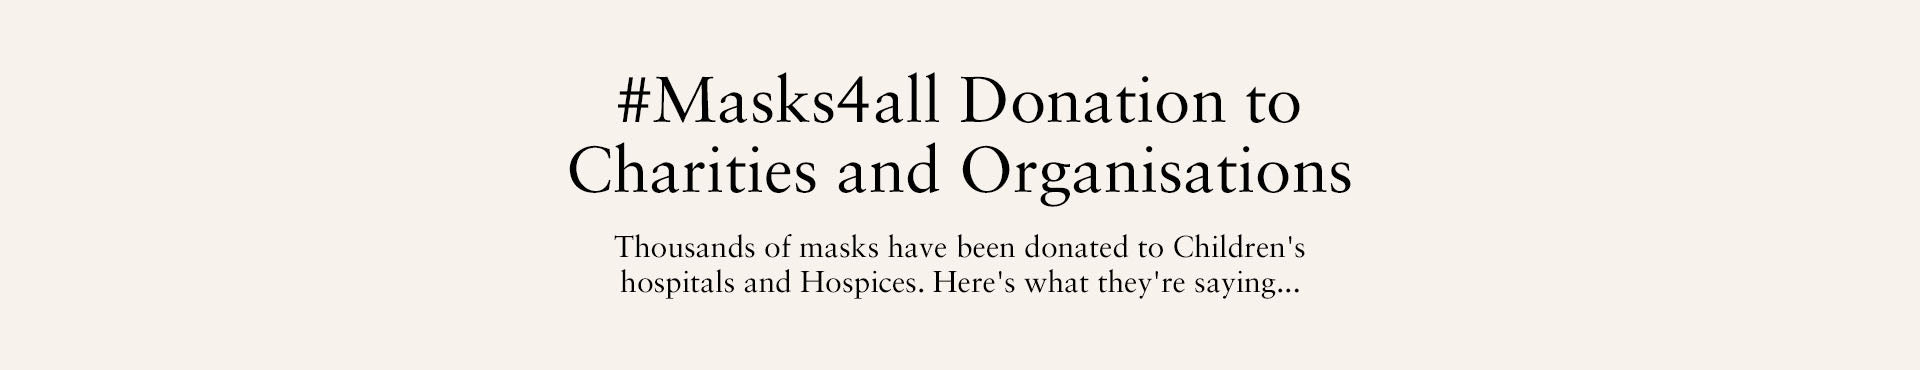 #Masks4all Donation to Charities and Organisations